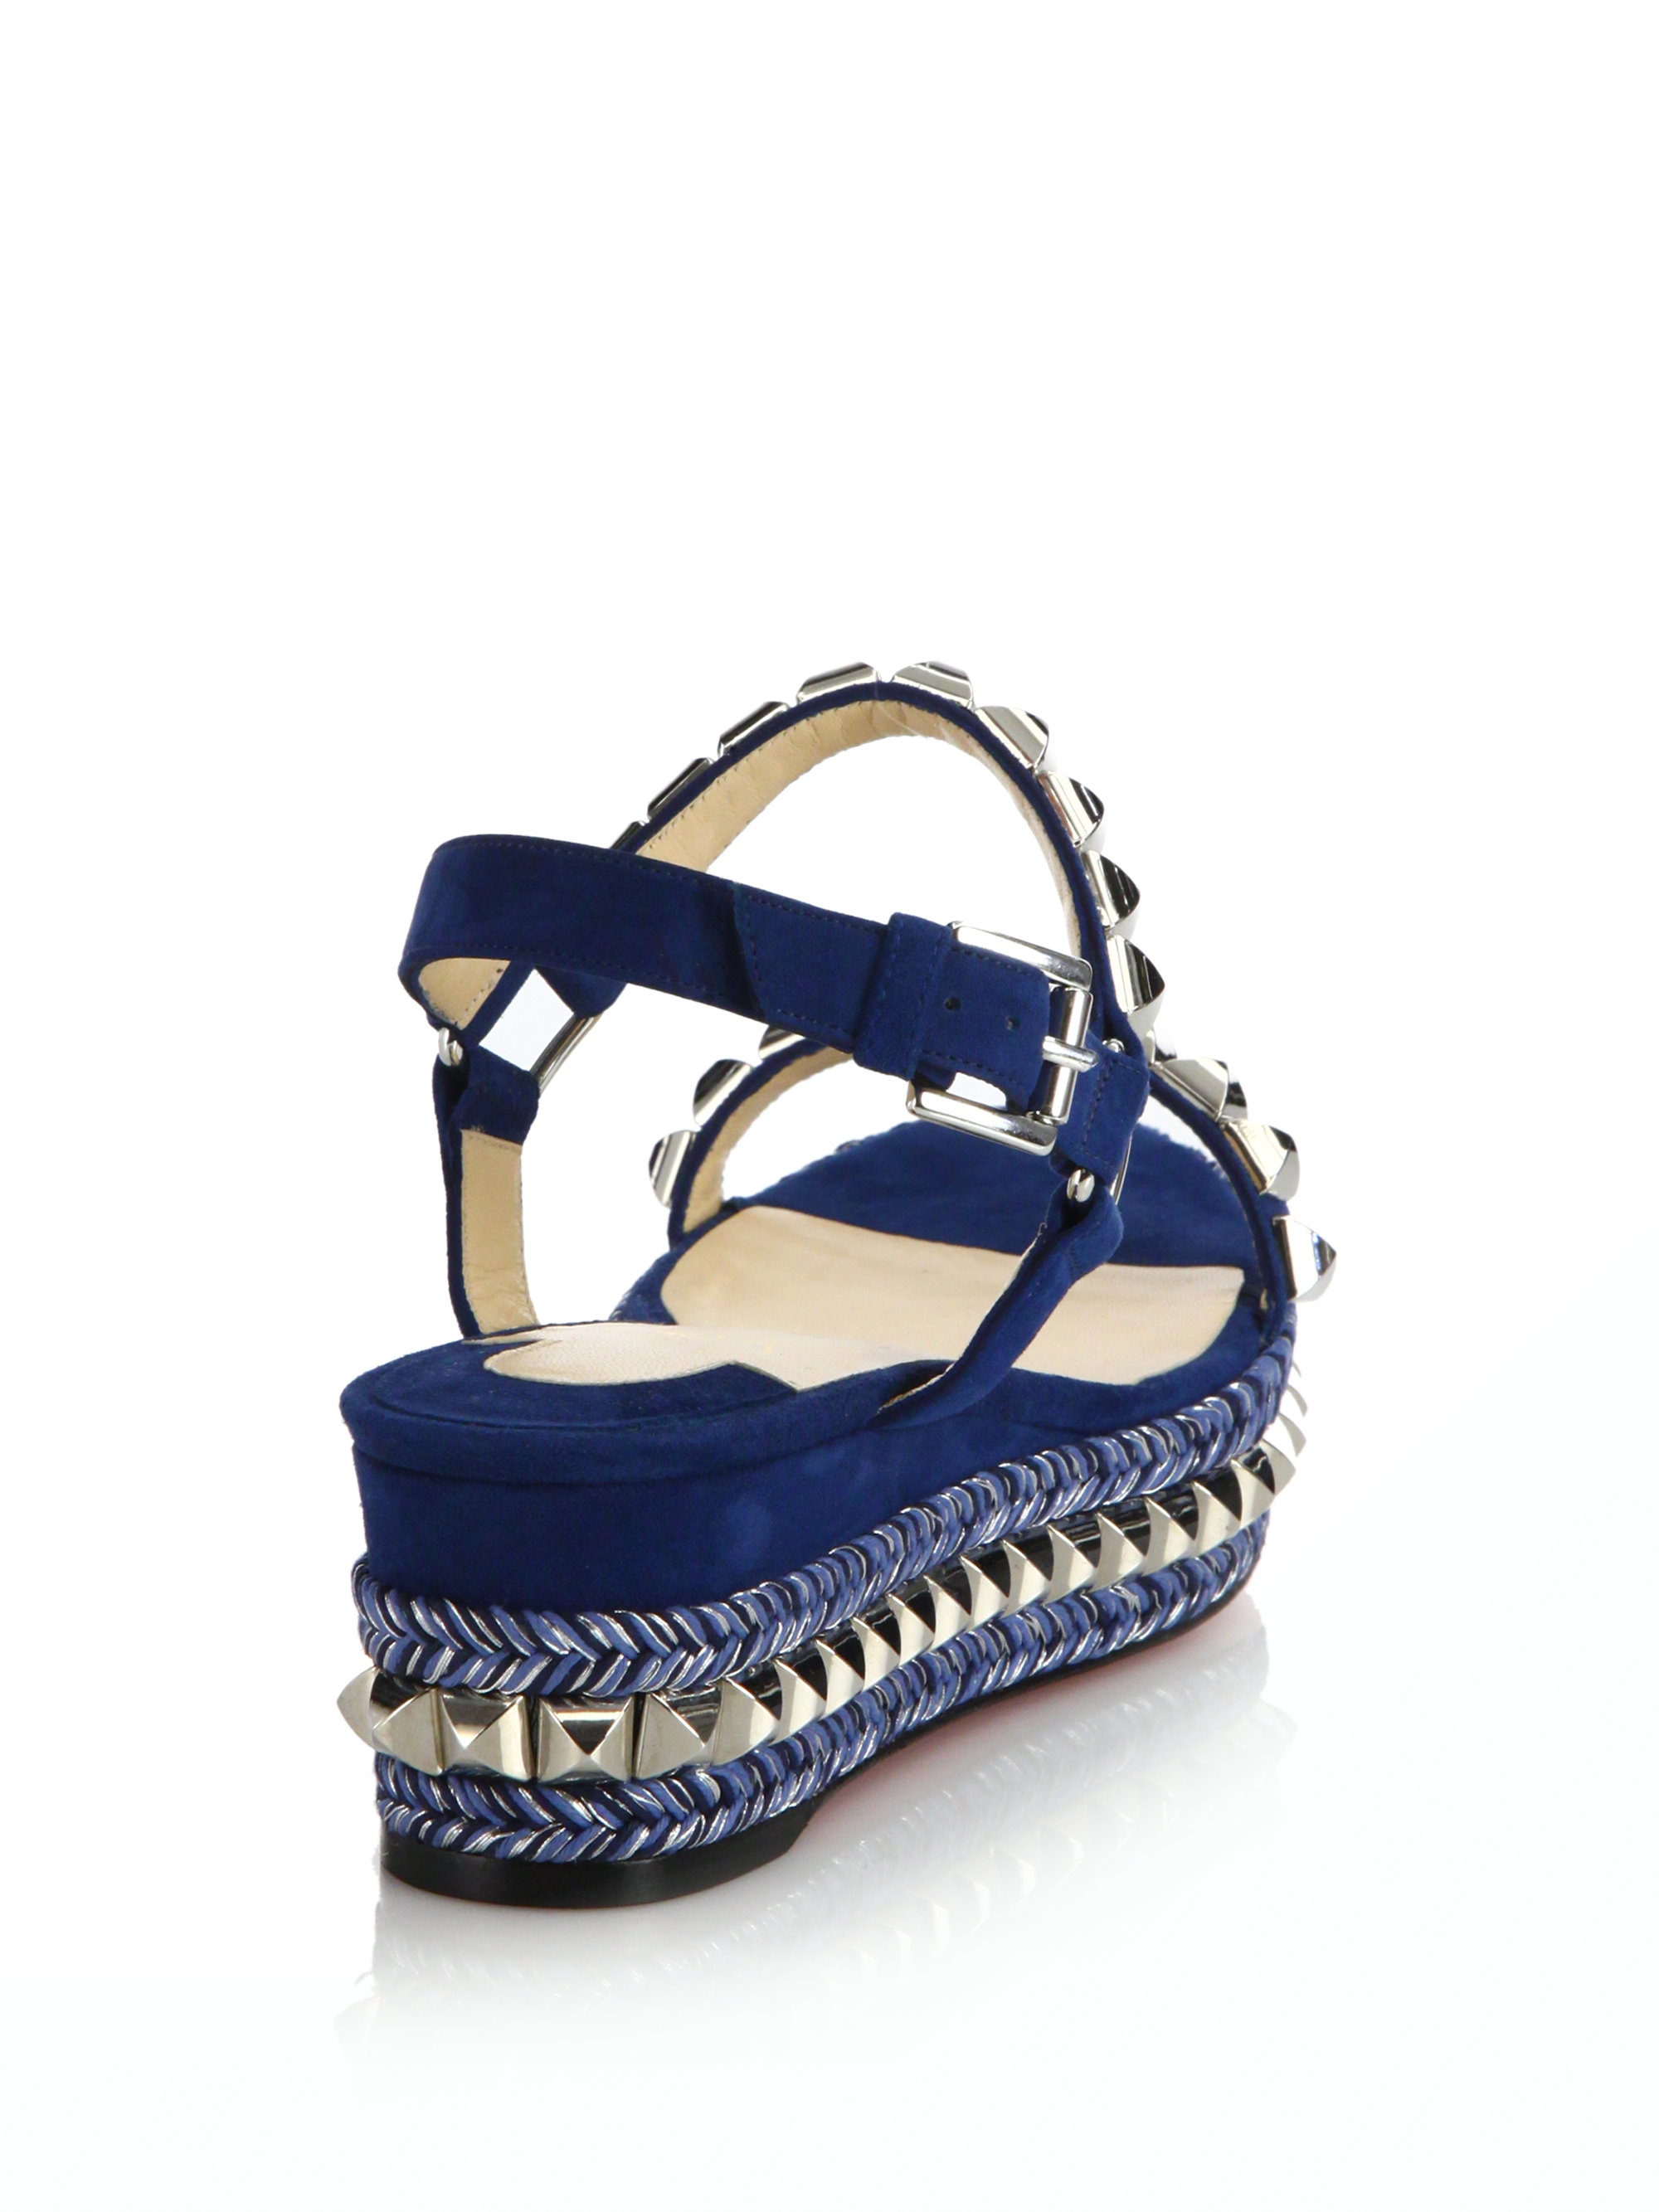 3934cd911c41 ... ireland lyst christian louboutin suede leather platform sandals in blue  3549a 5f503